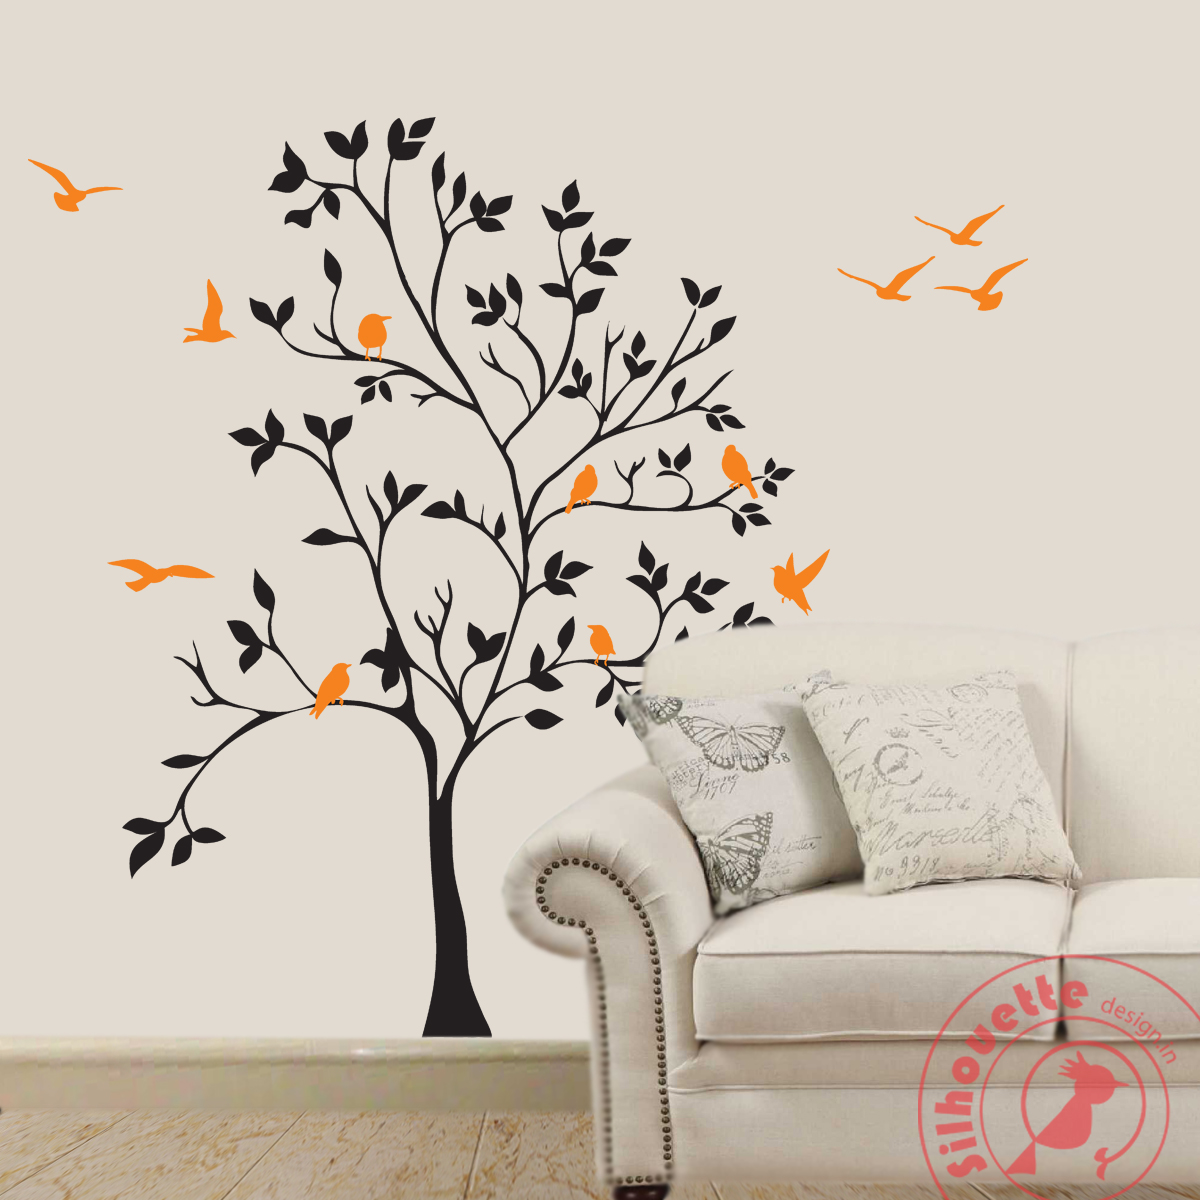 tree of life silhouette design wall decal buy removable wall stickers online tree silhouette quote